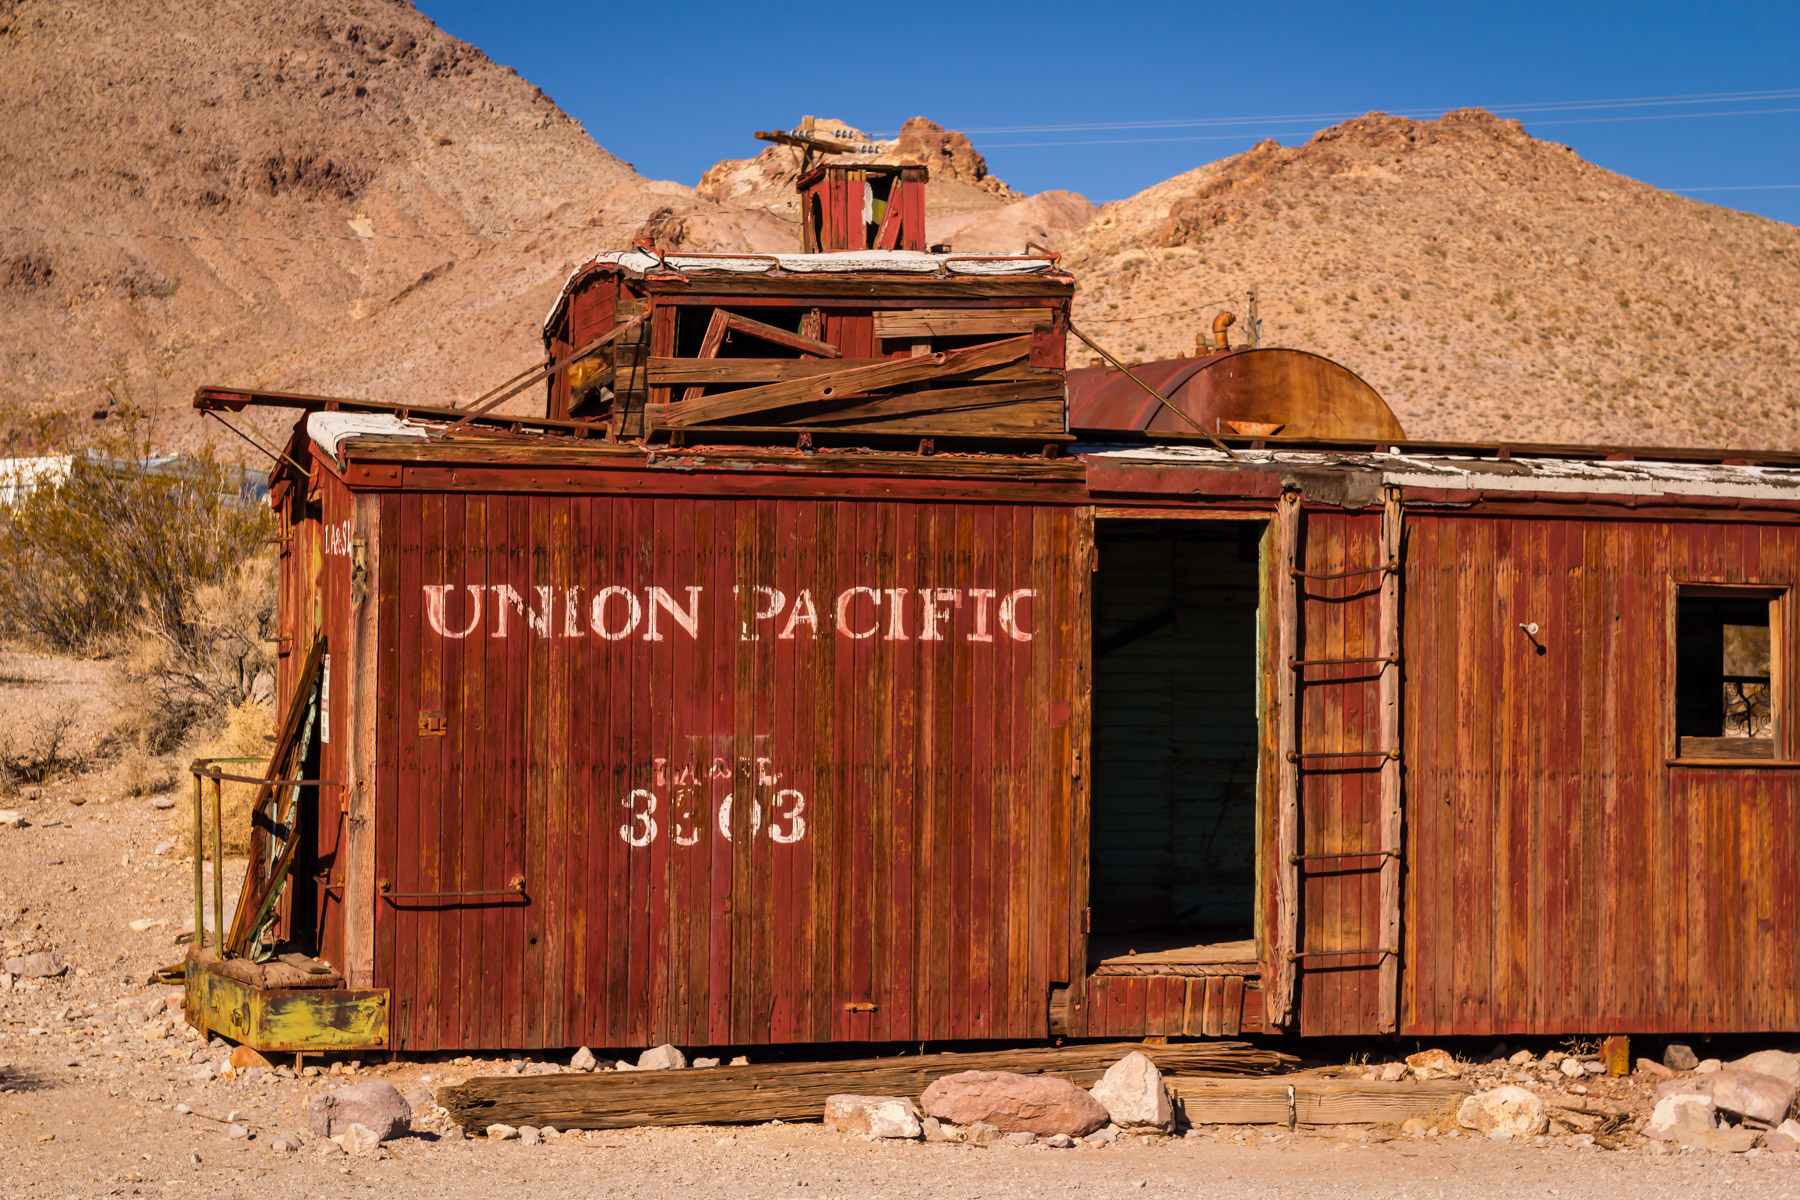 An abandoned Union Pacific boxcar lies weathered in the desert at the Nevada ghost town of Rhyolite.